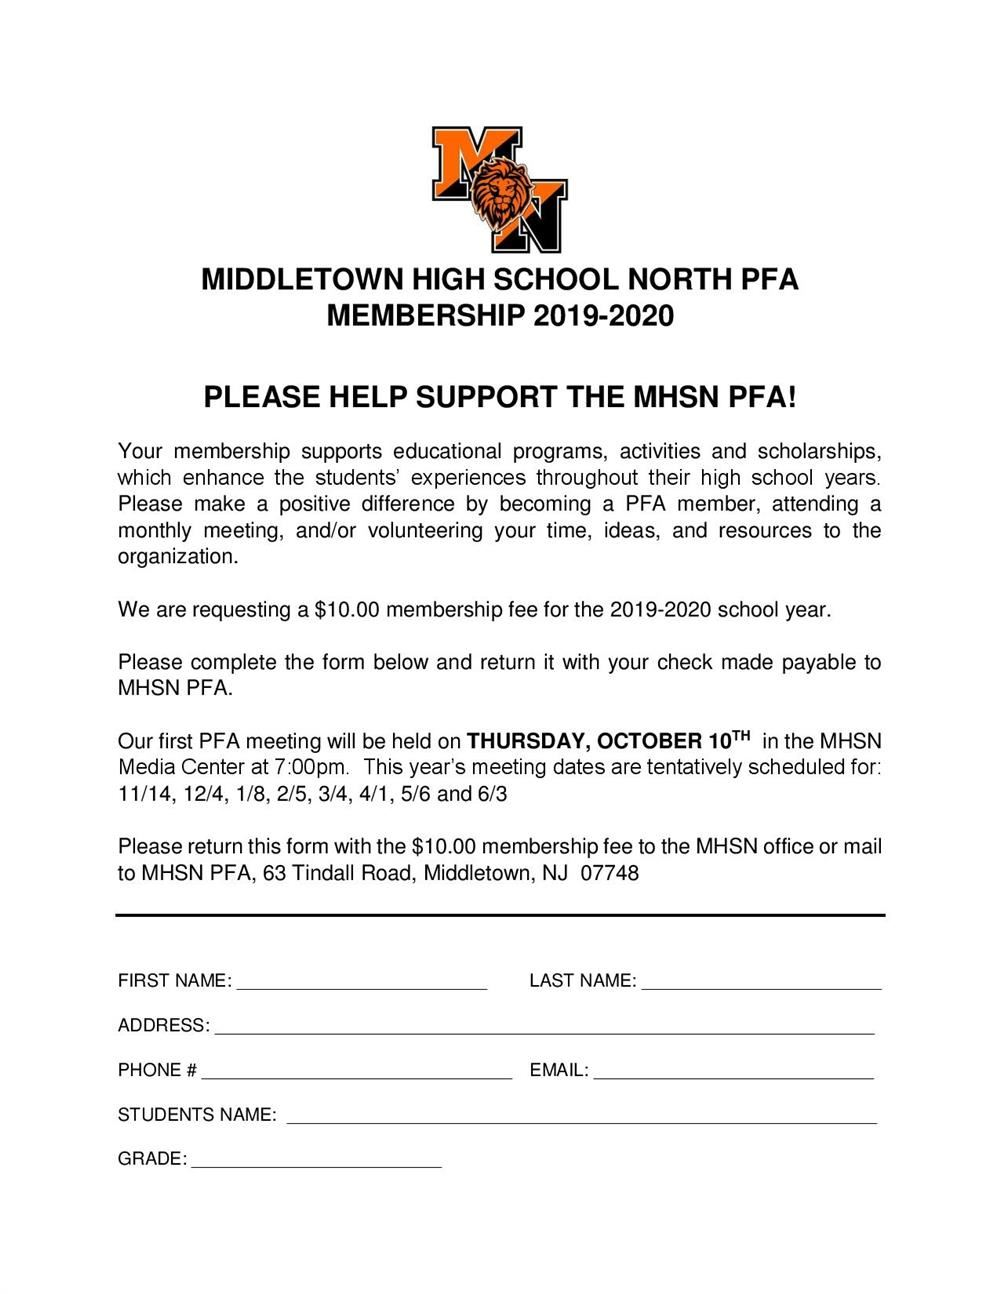 thumbnail image of MHS North PFA Membership Form